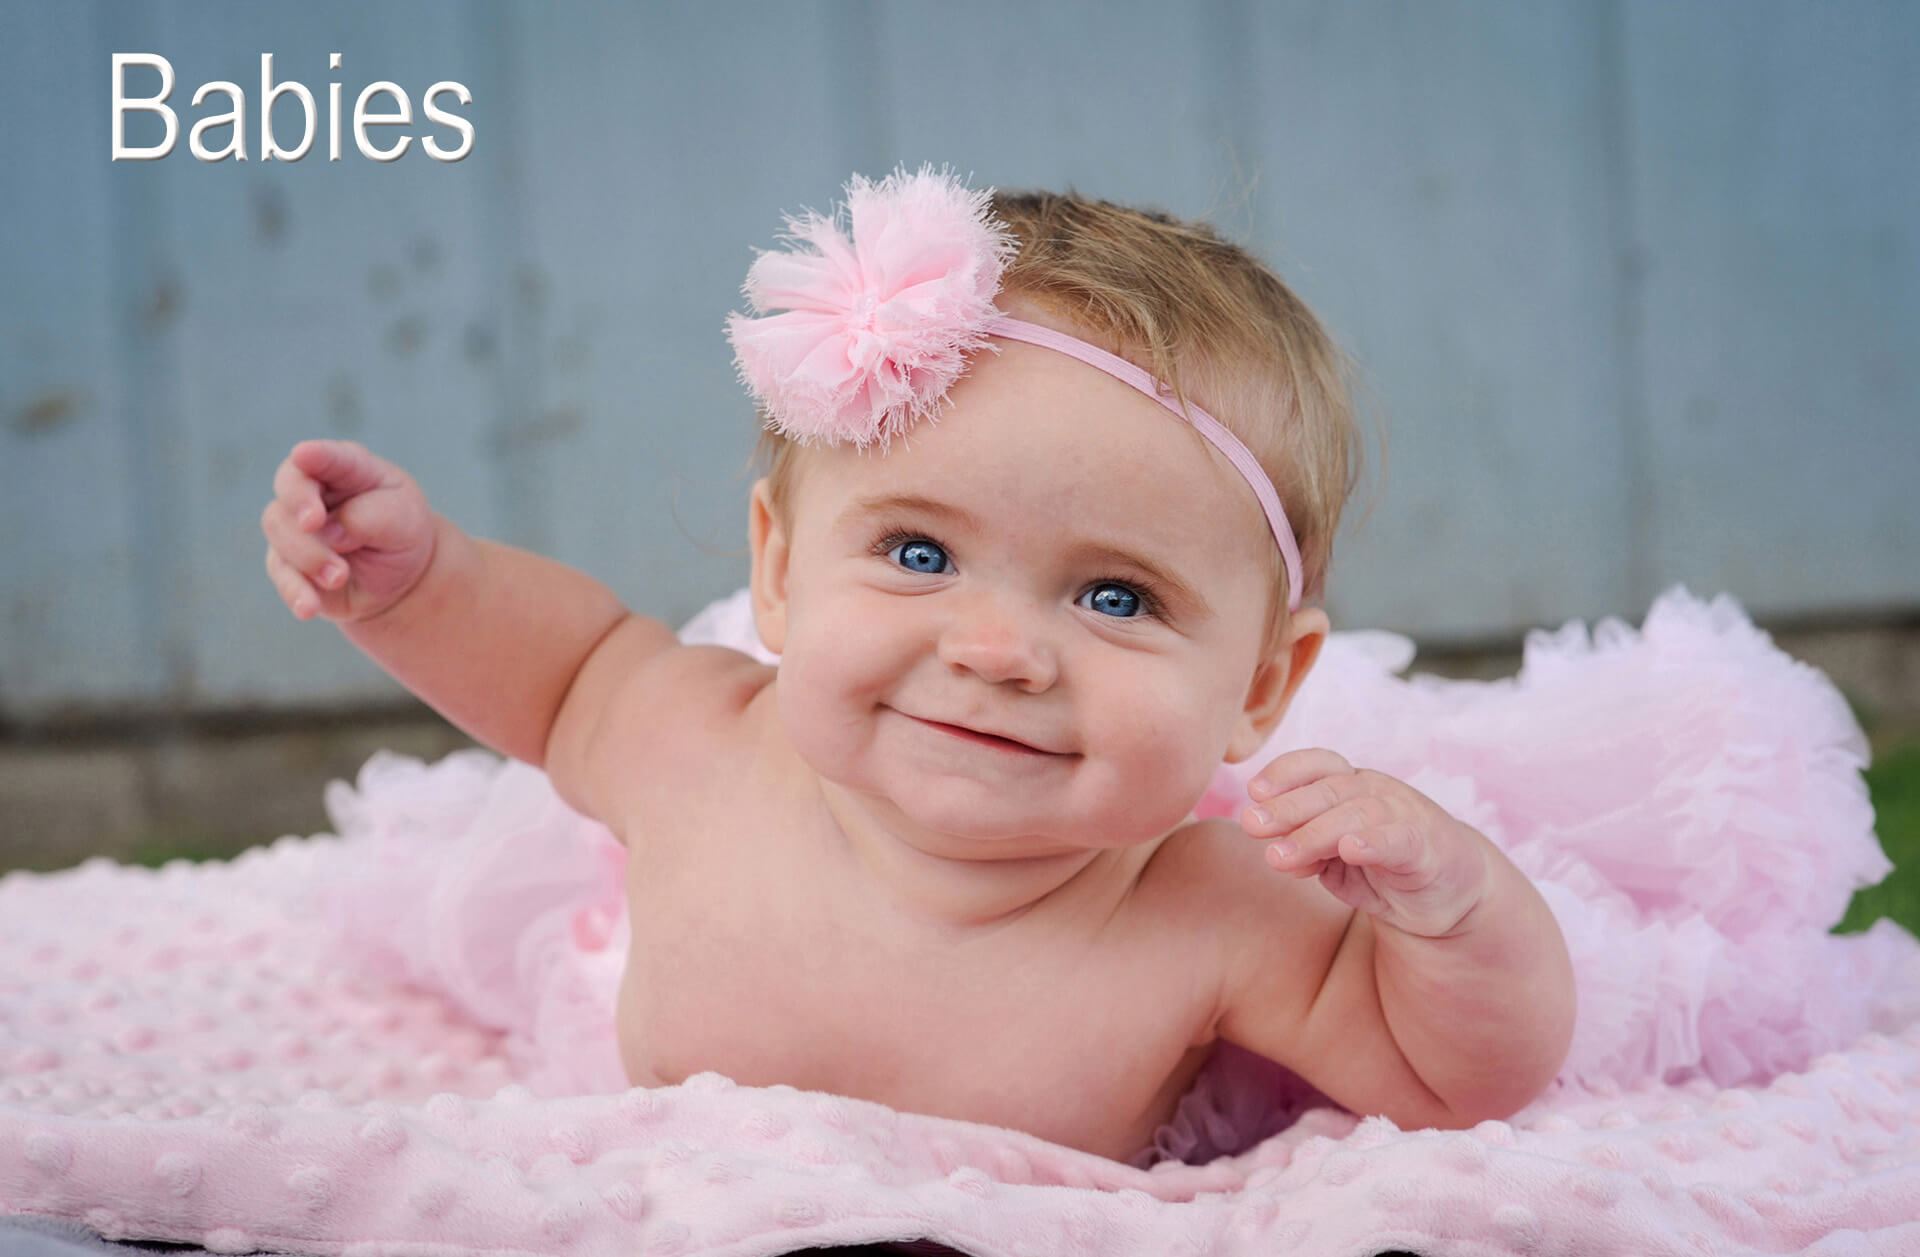 A little girl's sixth month photo shoot features a baby in Troy, Michigan in her tutu during best baby photographer Marci Curtis's Detroit baby photography session.